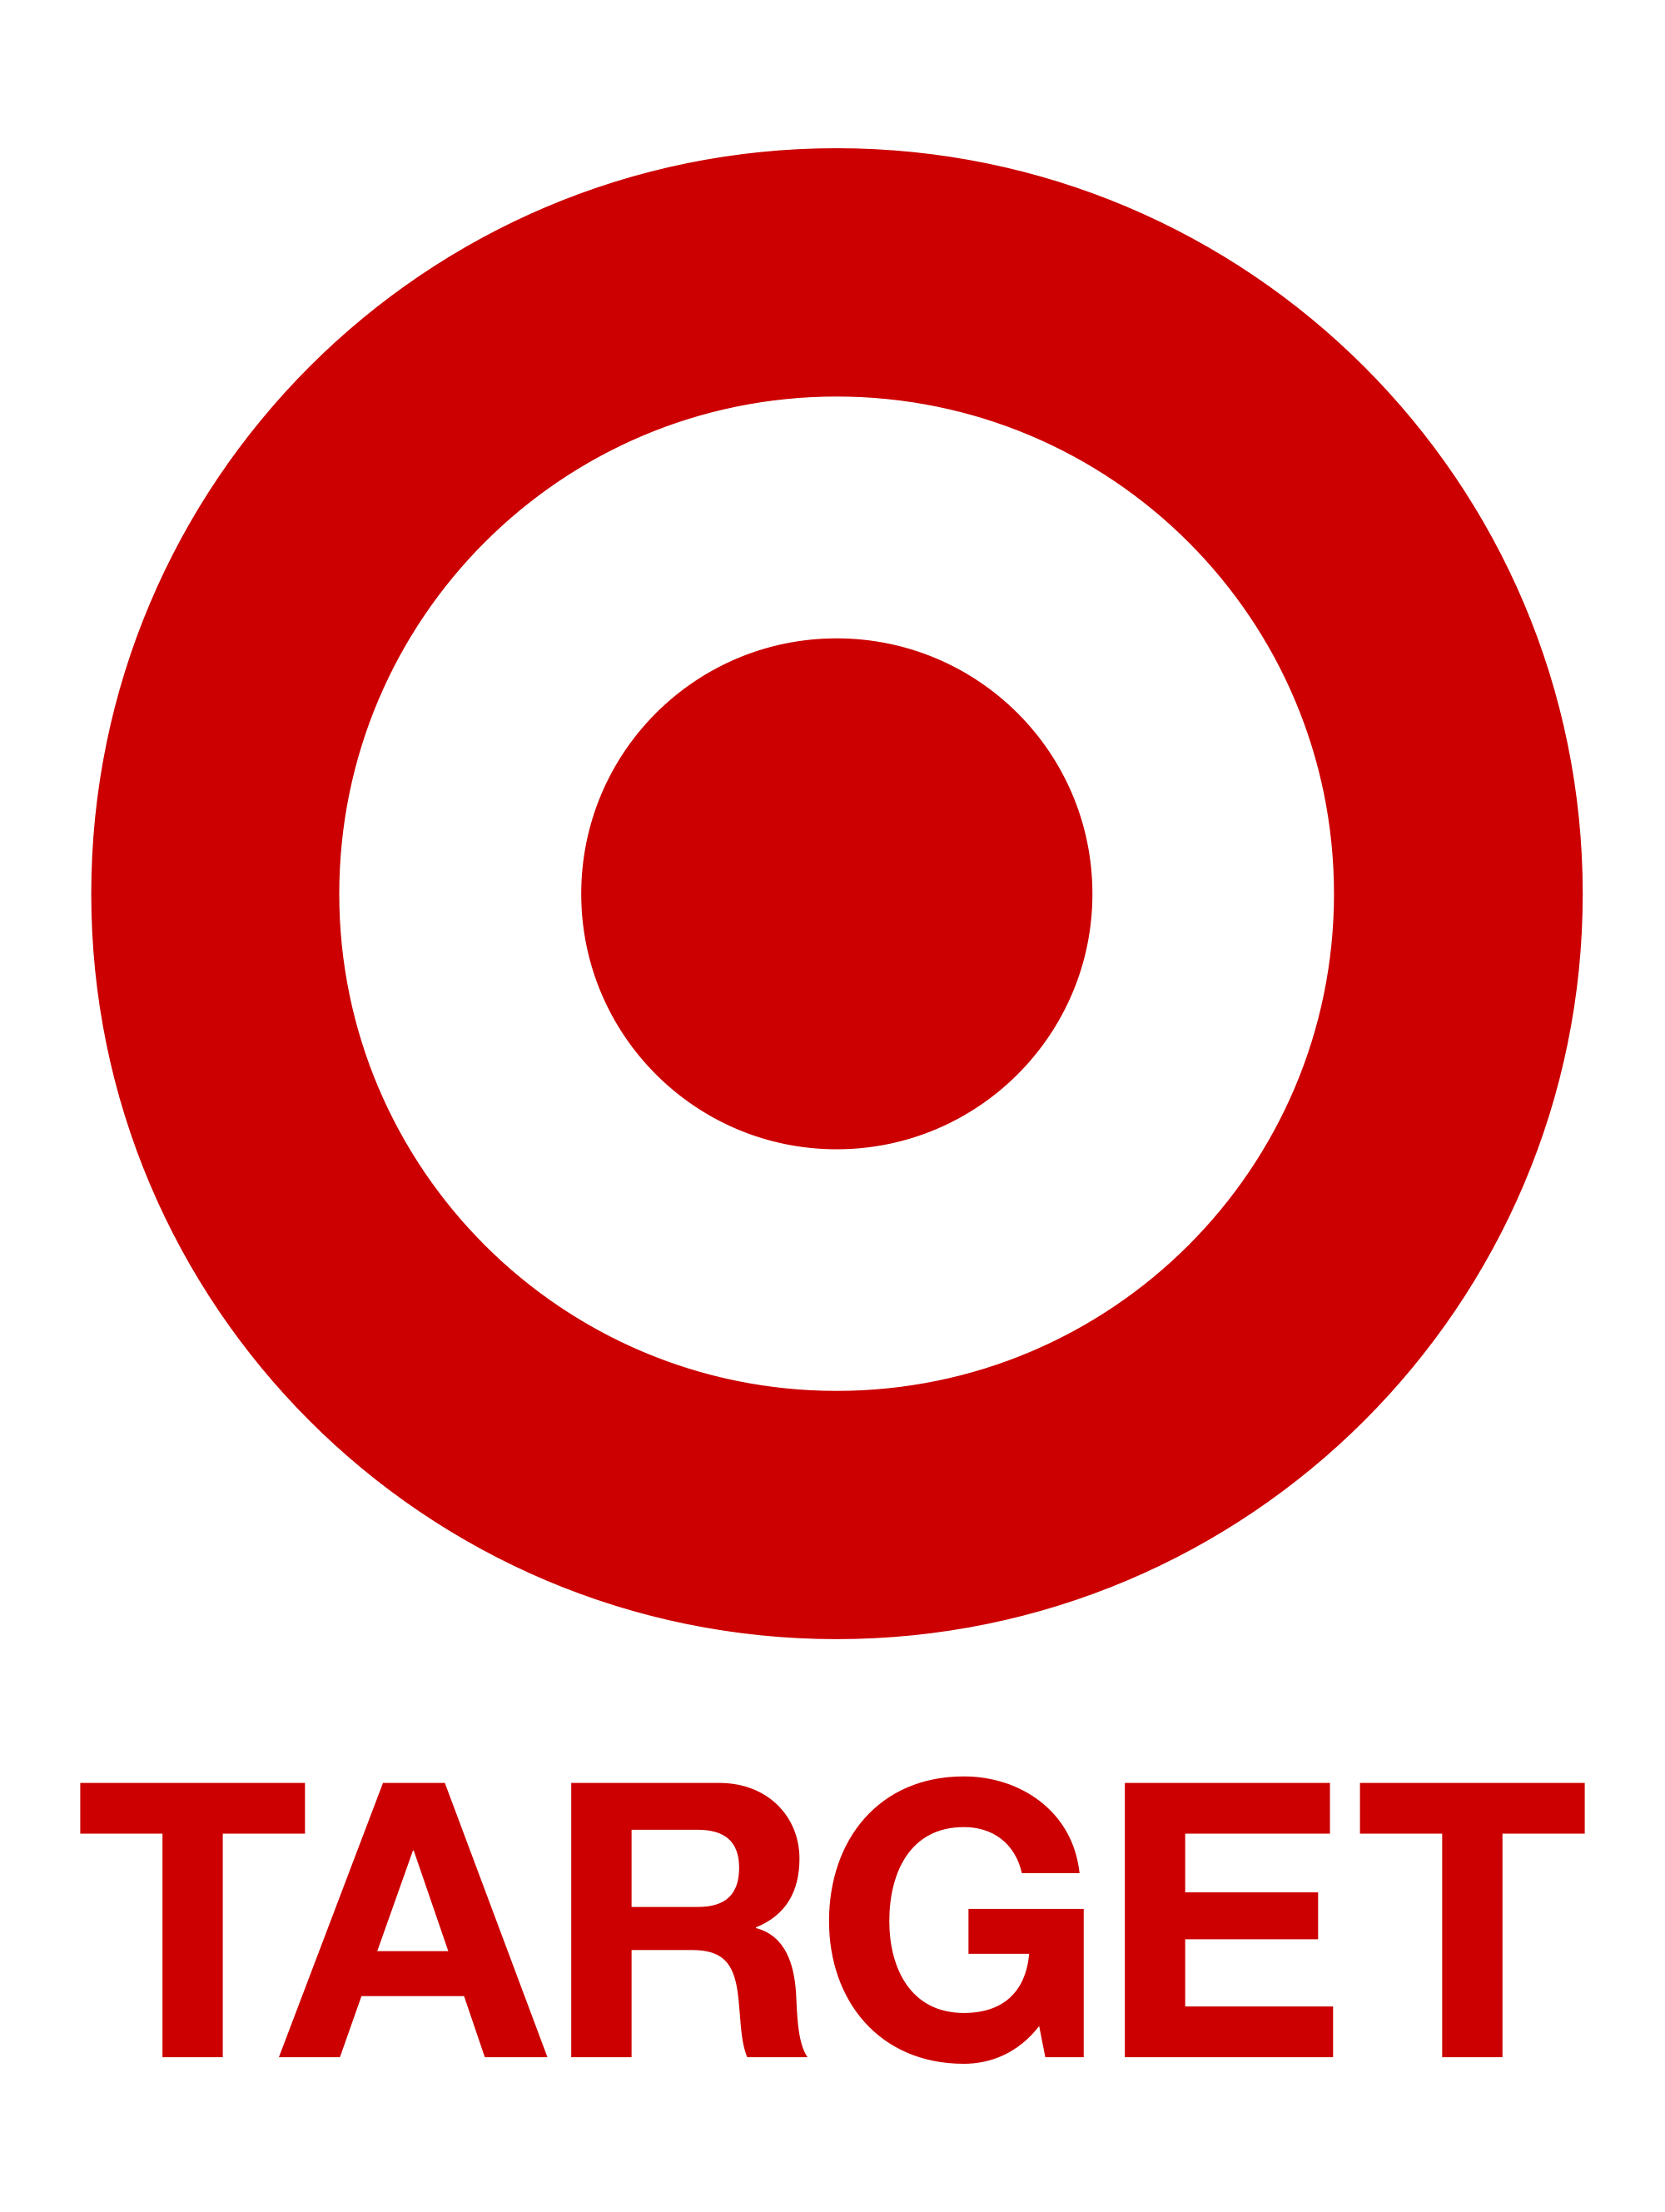 TARGET - TARGET WILL GIVE UP TO 7.25% TO WESTLAKE HILLS ON ALL ON-LINE ORDERS WITH THIS LINK.